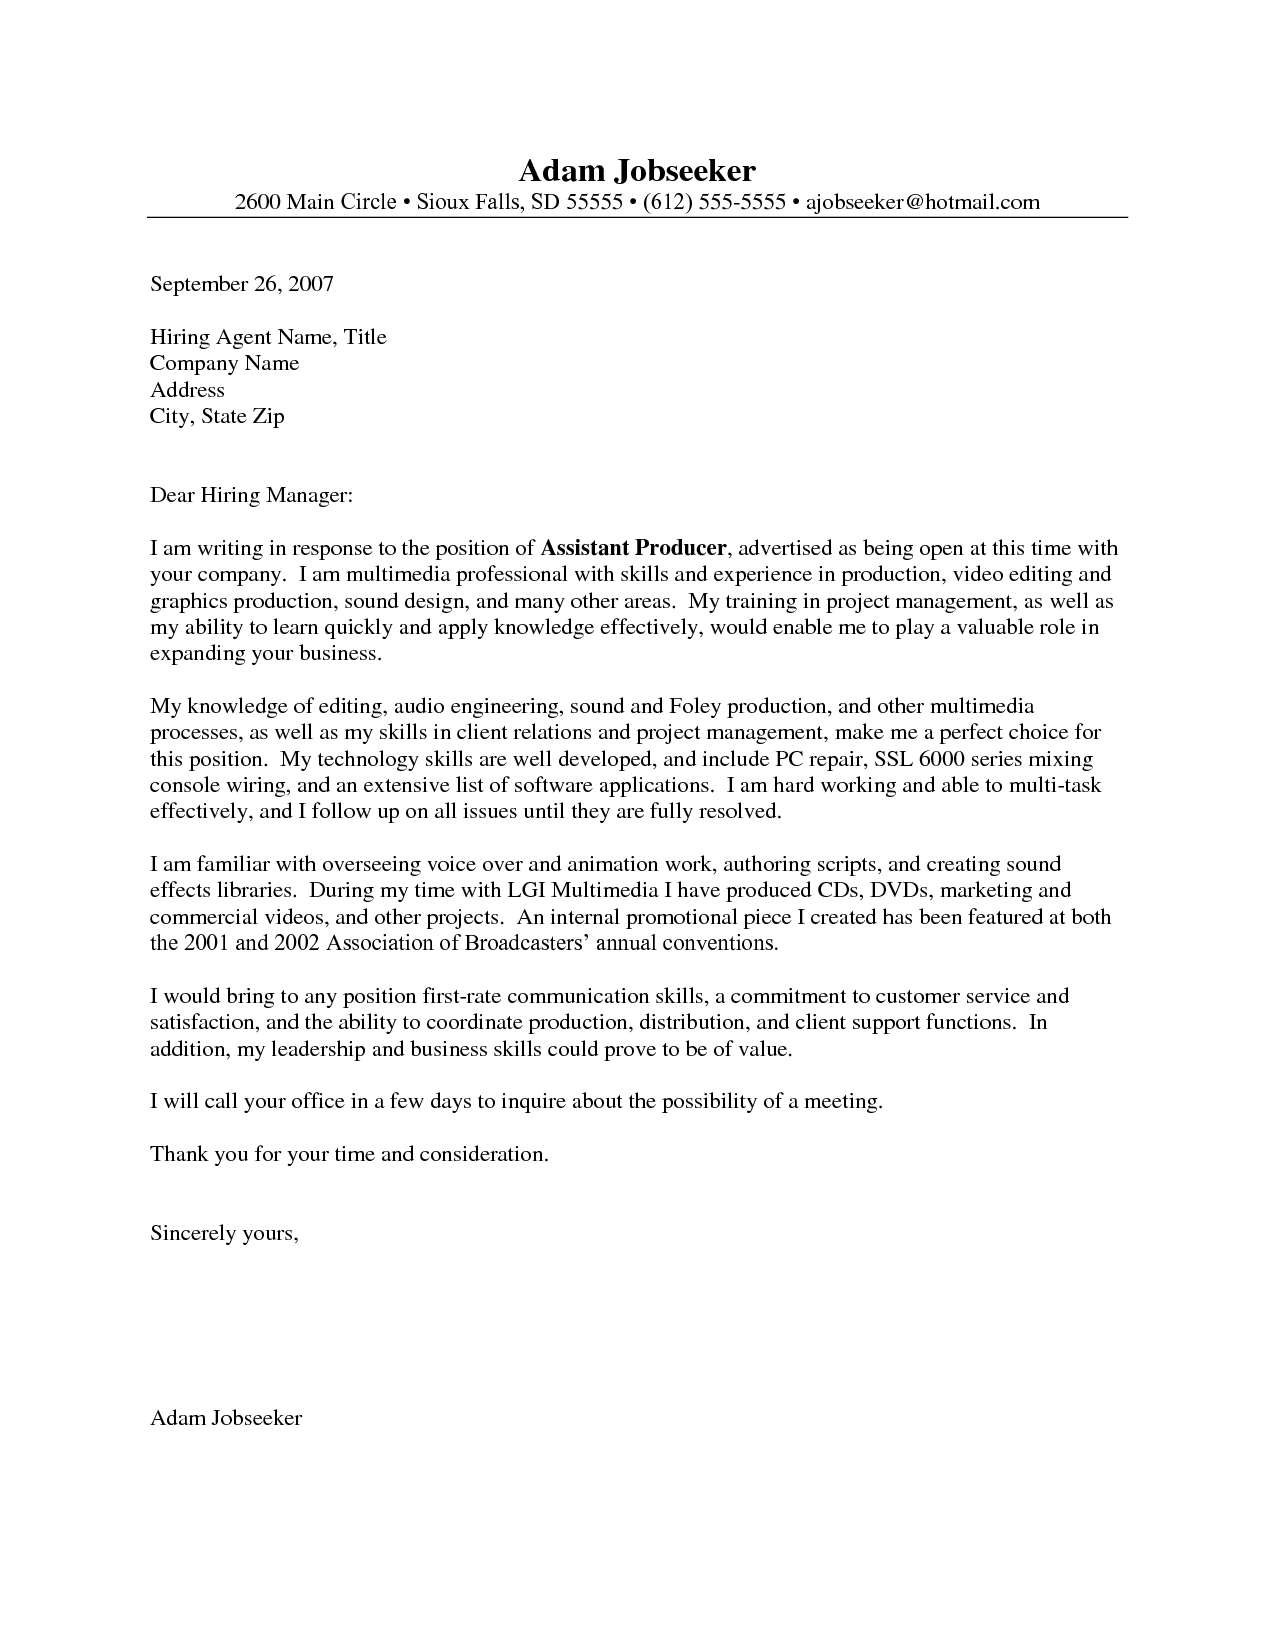 Sample Biotech Cover Letter Entry Level Cover Letter Example  Job  Pinterest  Cover Letter